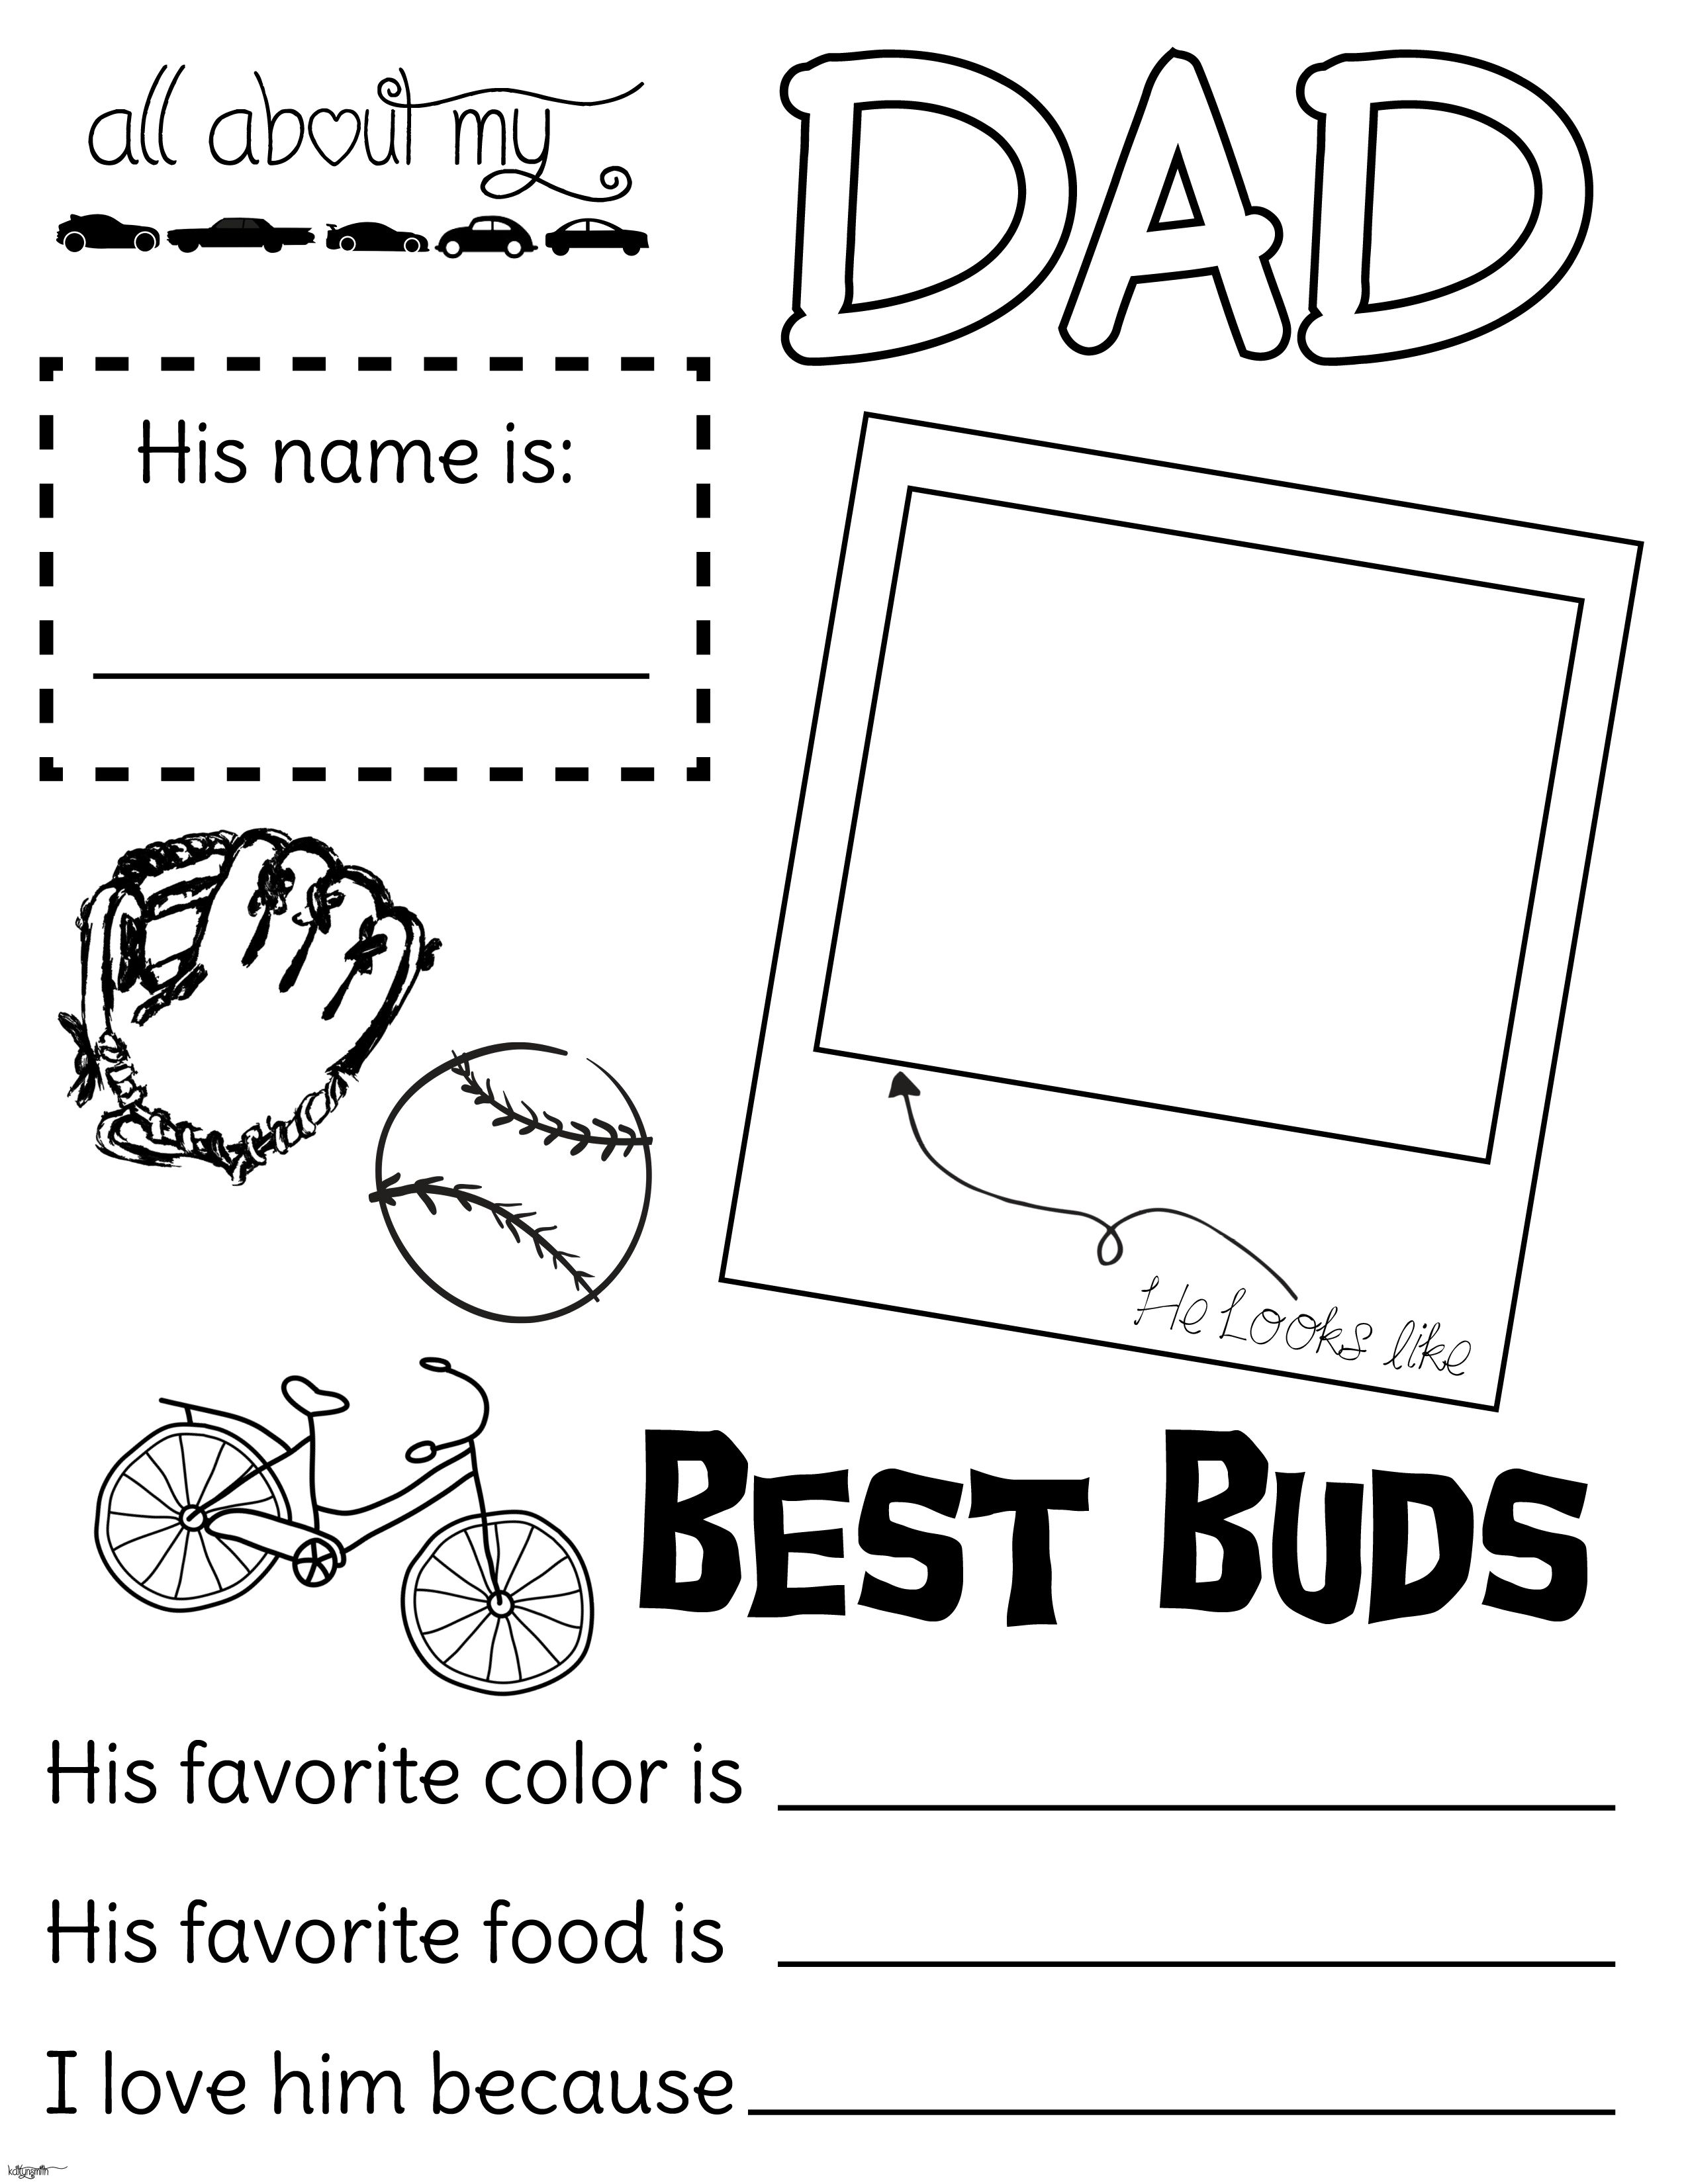 All about my dad. Fathers Day handout. fillout, coloring page. lds ...